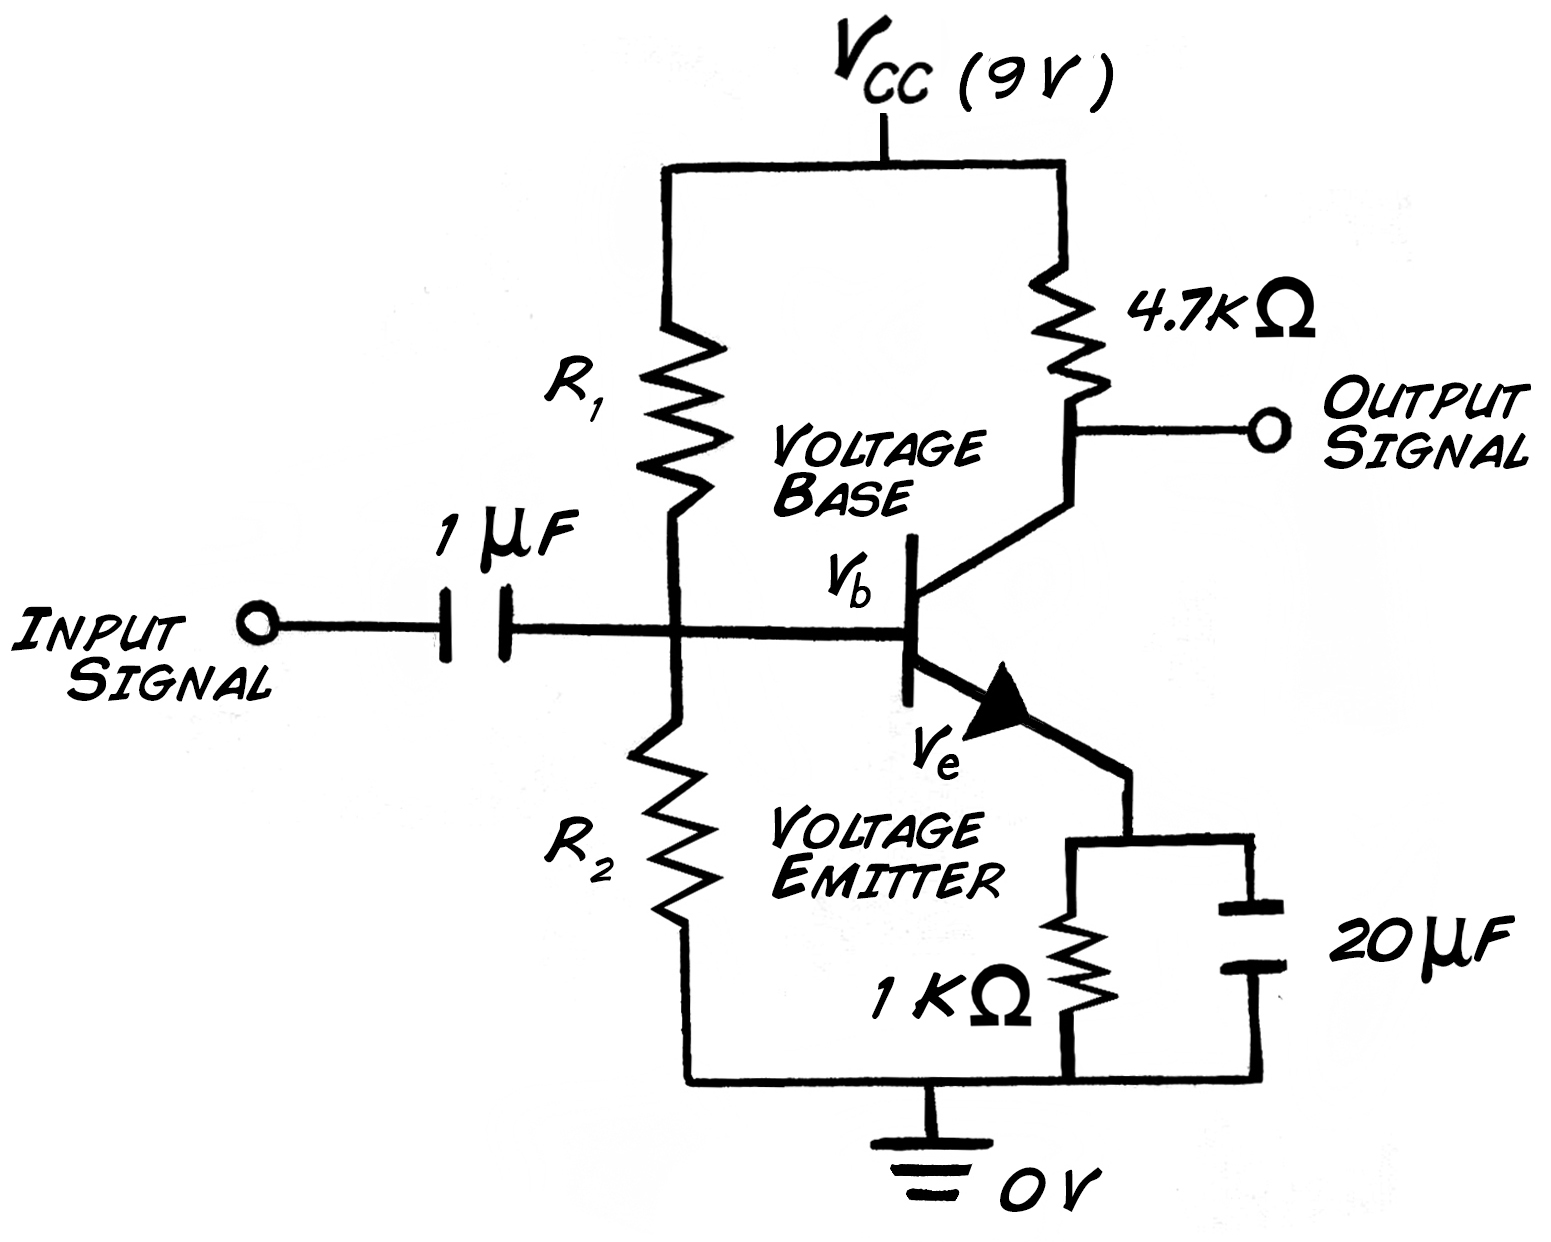 Experiment Transistor Circuit Design Diagram Voltage Source Setting The Bias Voltages